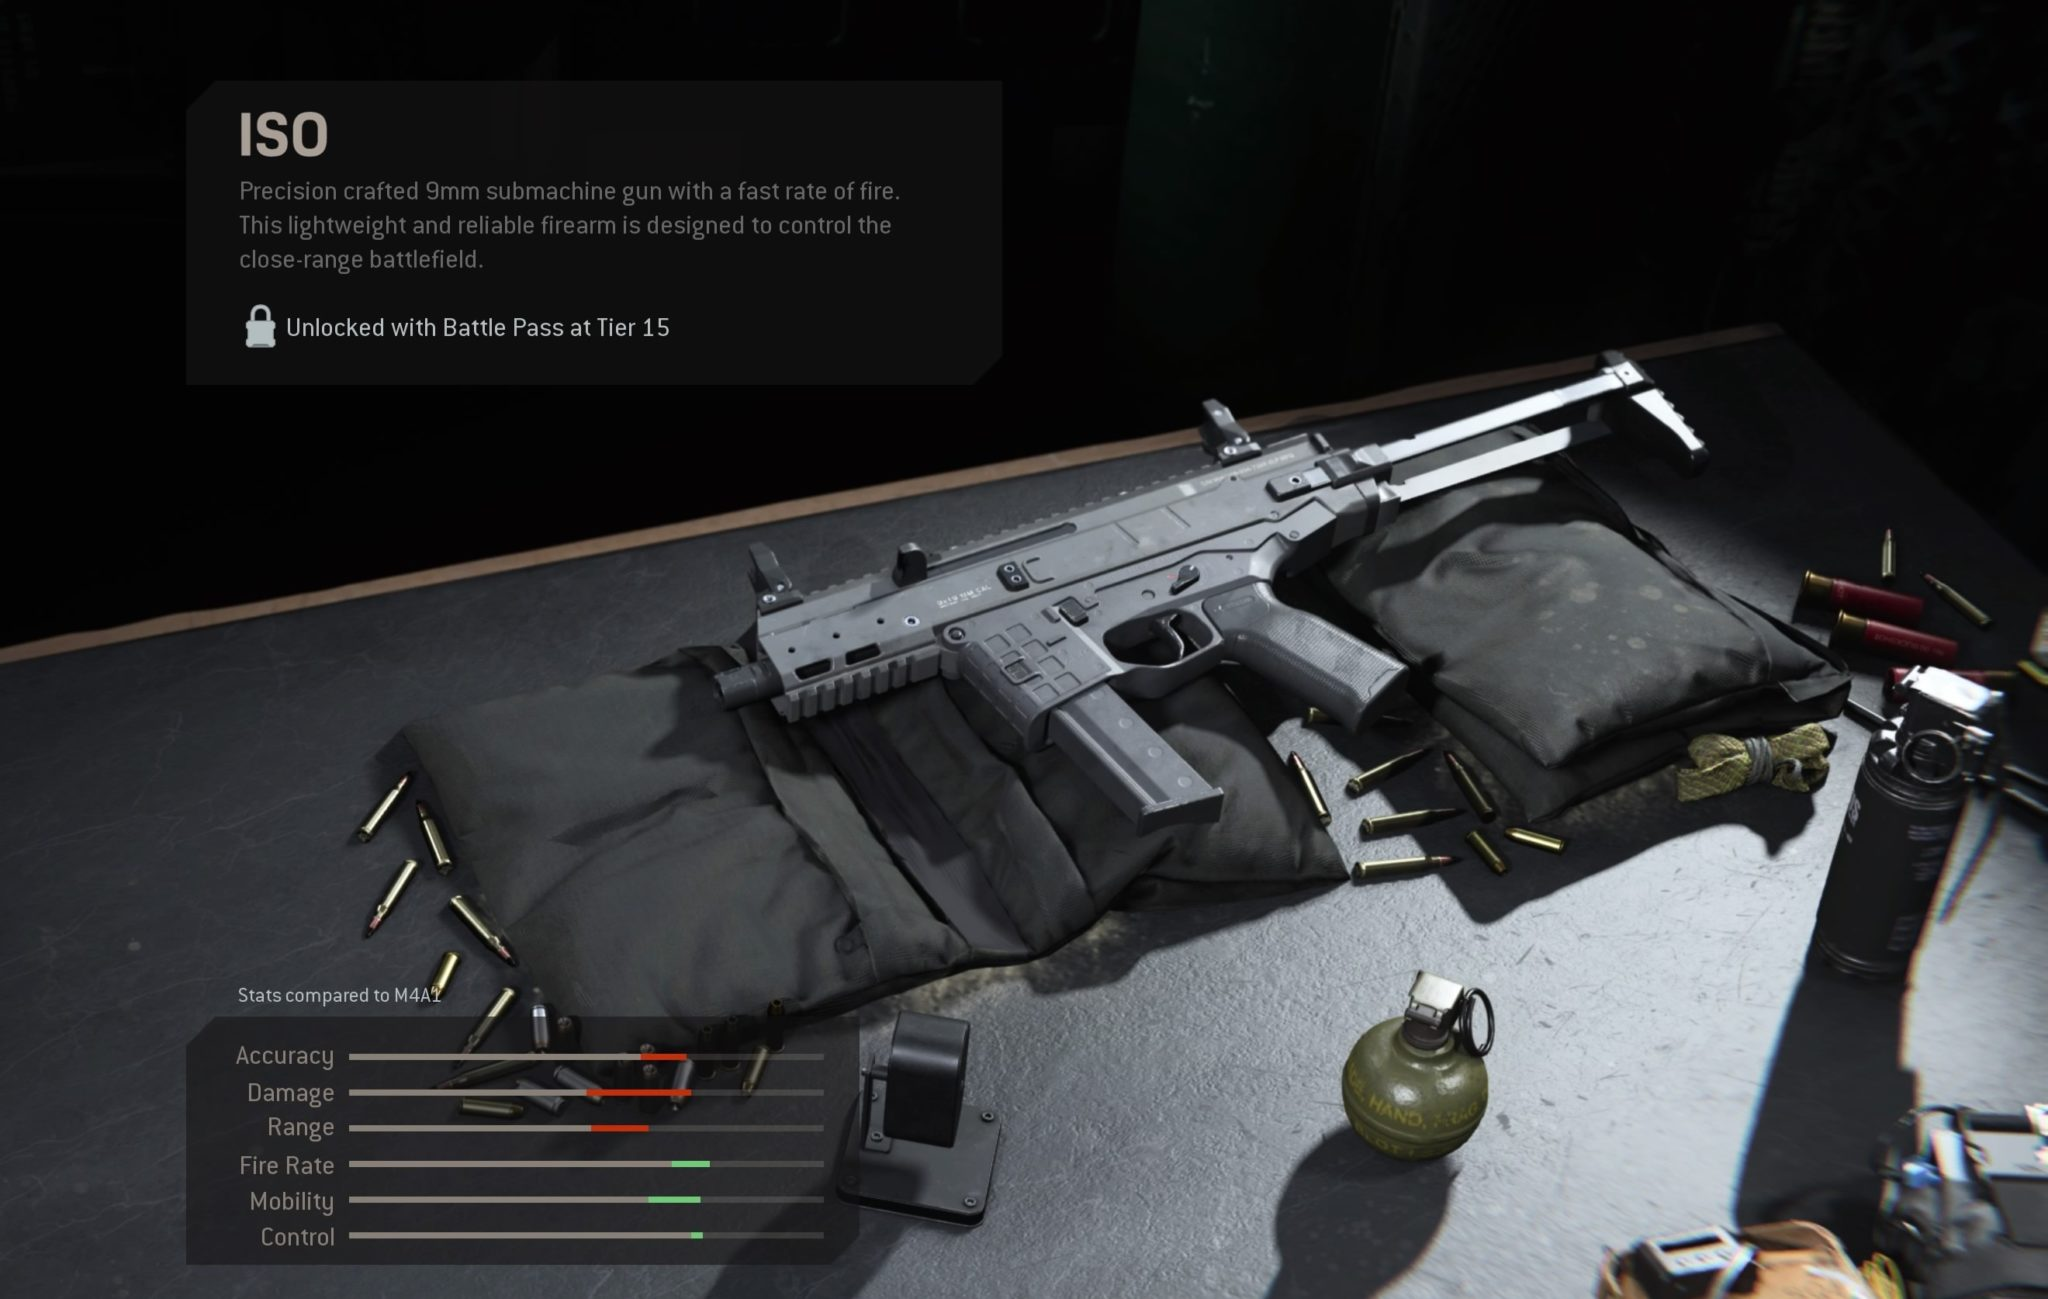 The ISO submachine gun as it appears in the Modern Wafare armory.